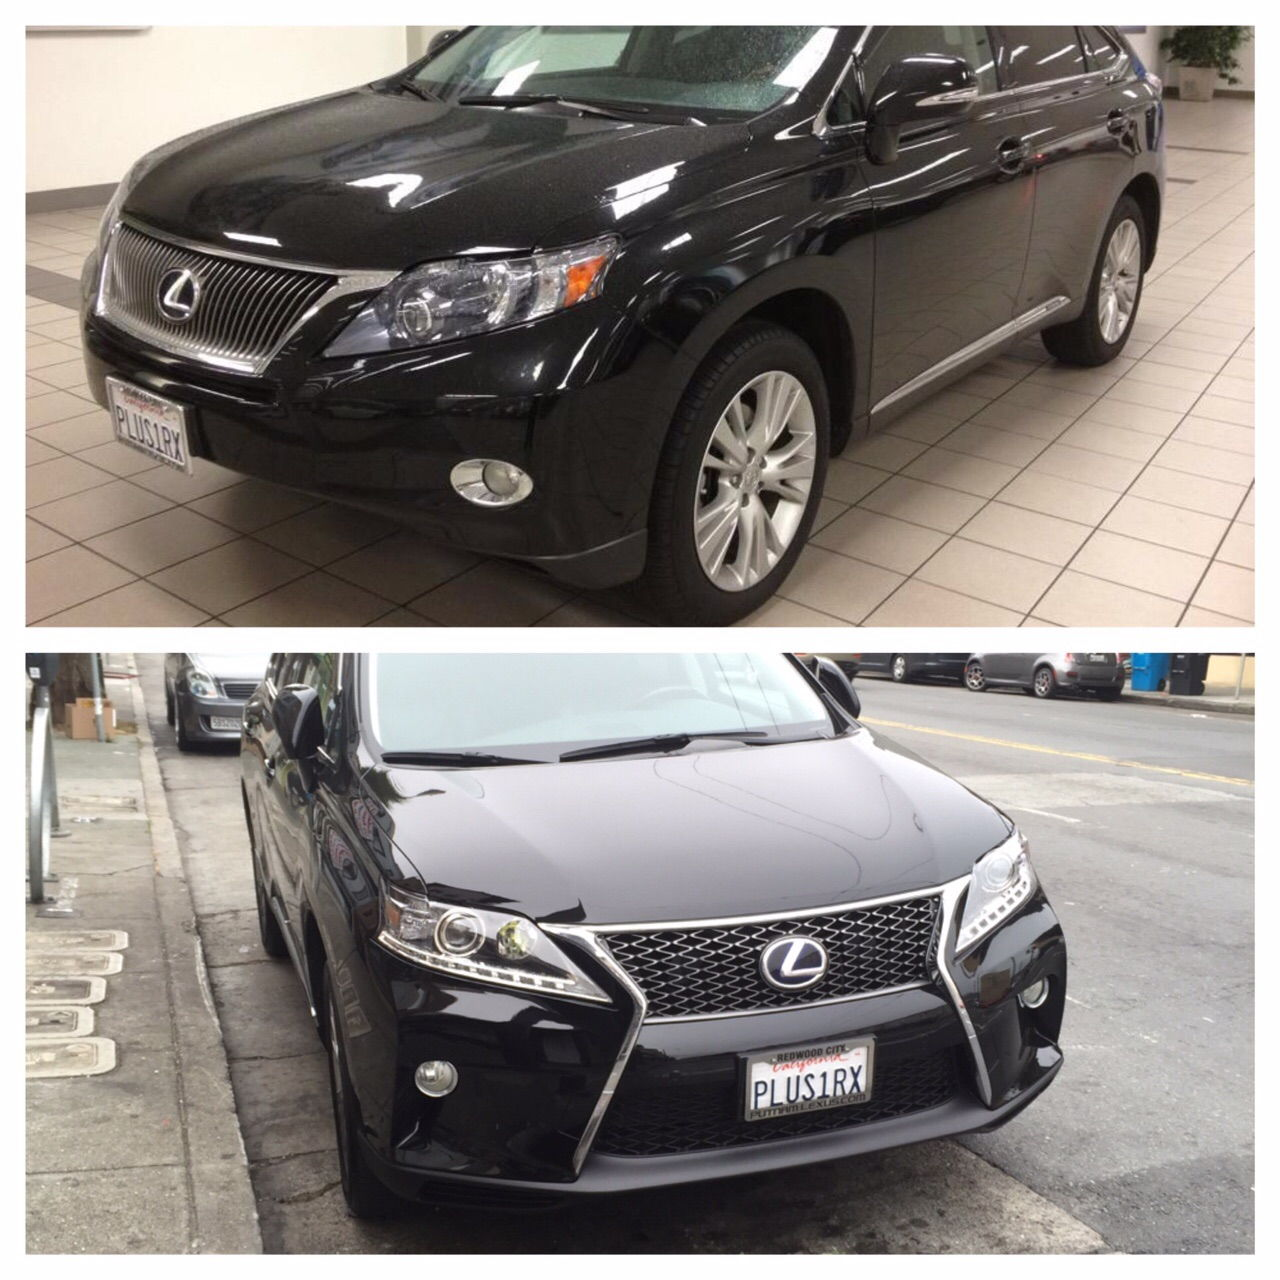 Used Lexus In Nj: RX Conversion (F Sport Bumper 2010-up)